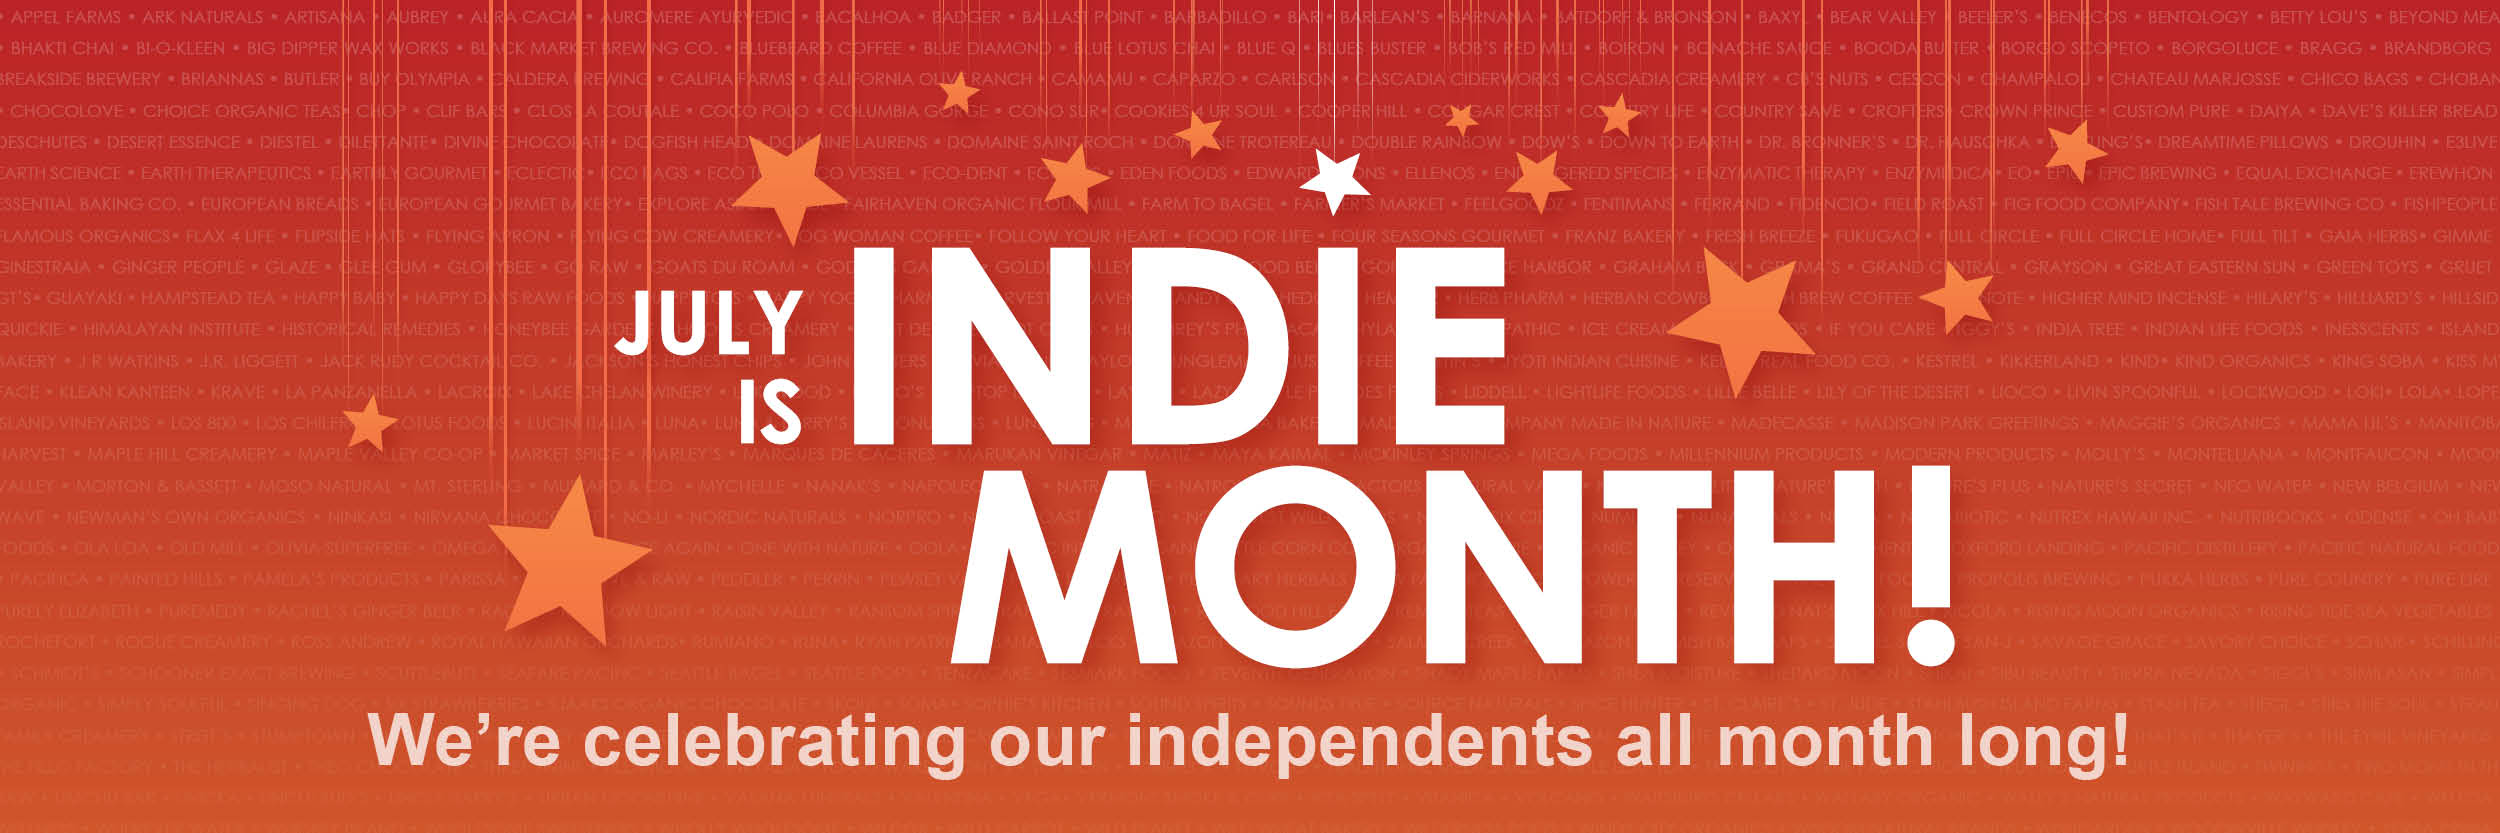 July is Indie Month